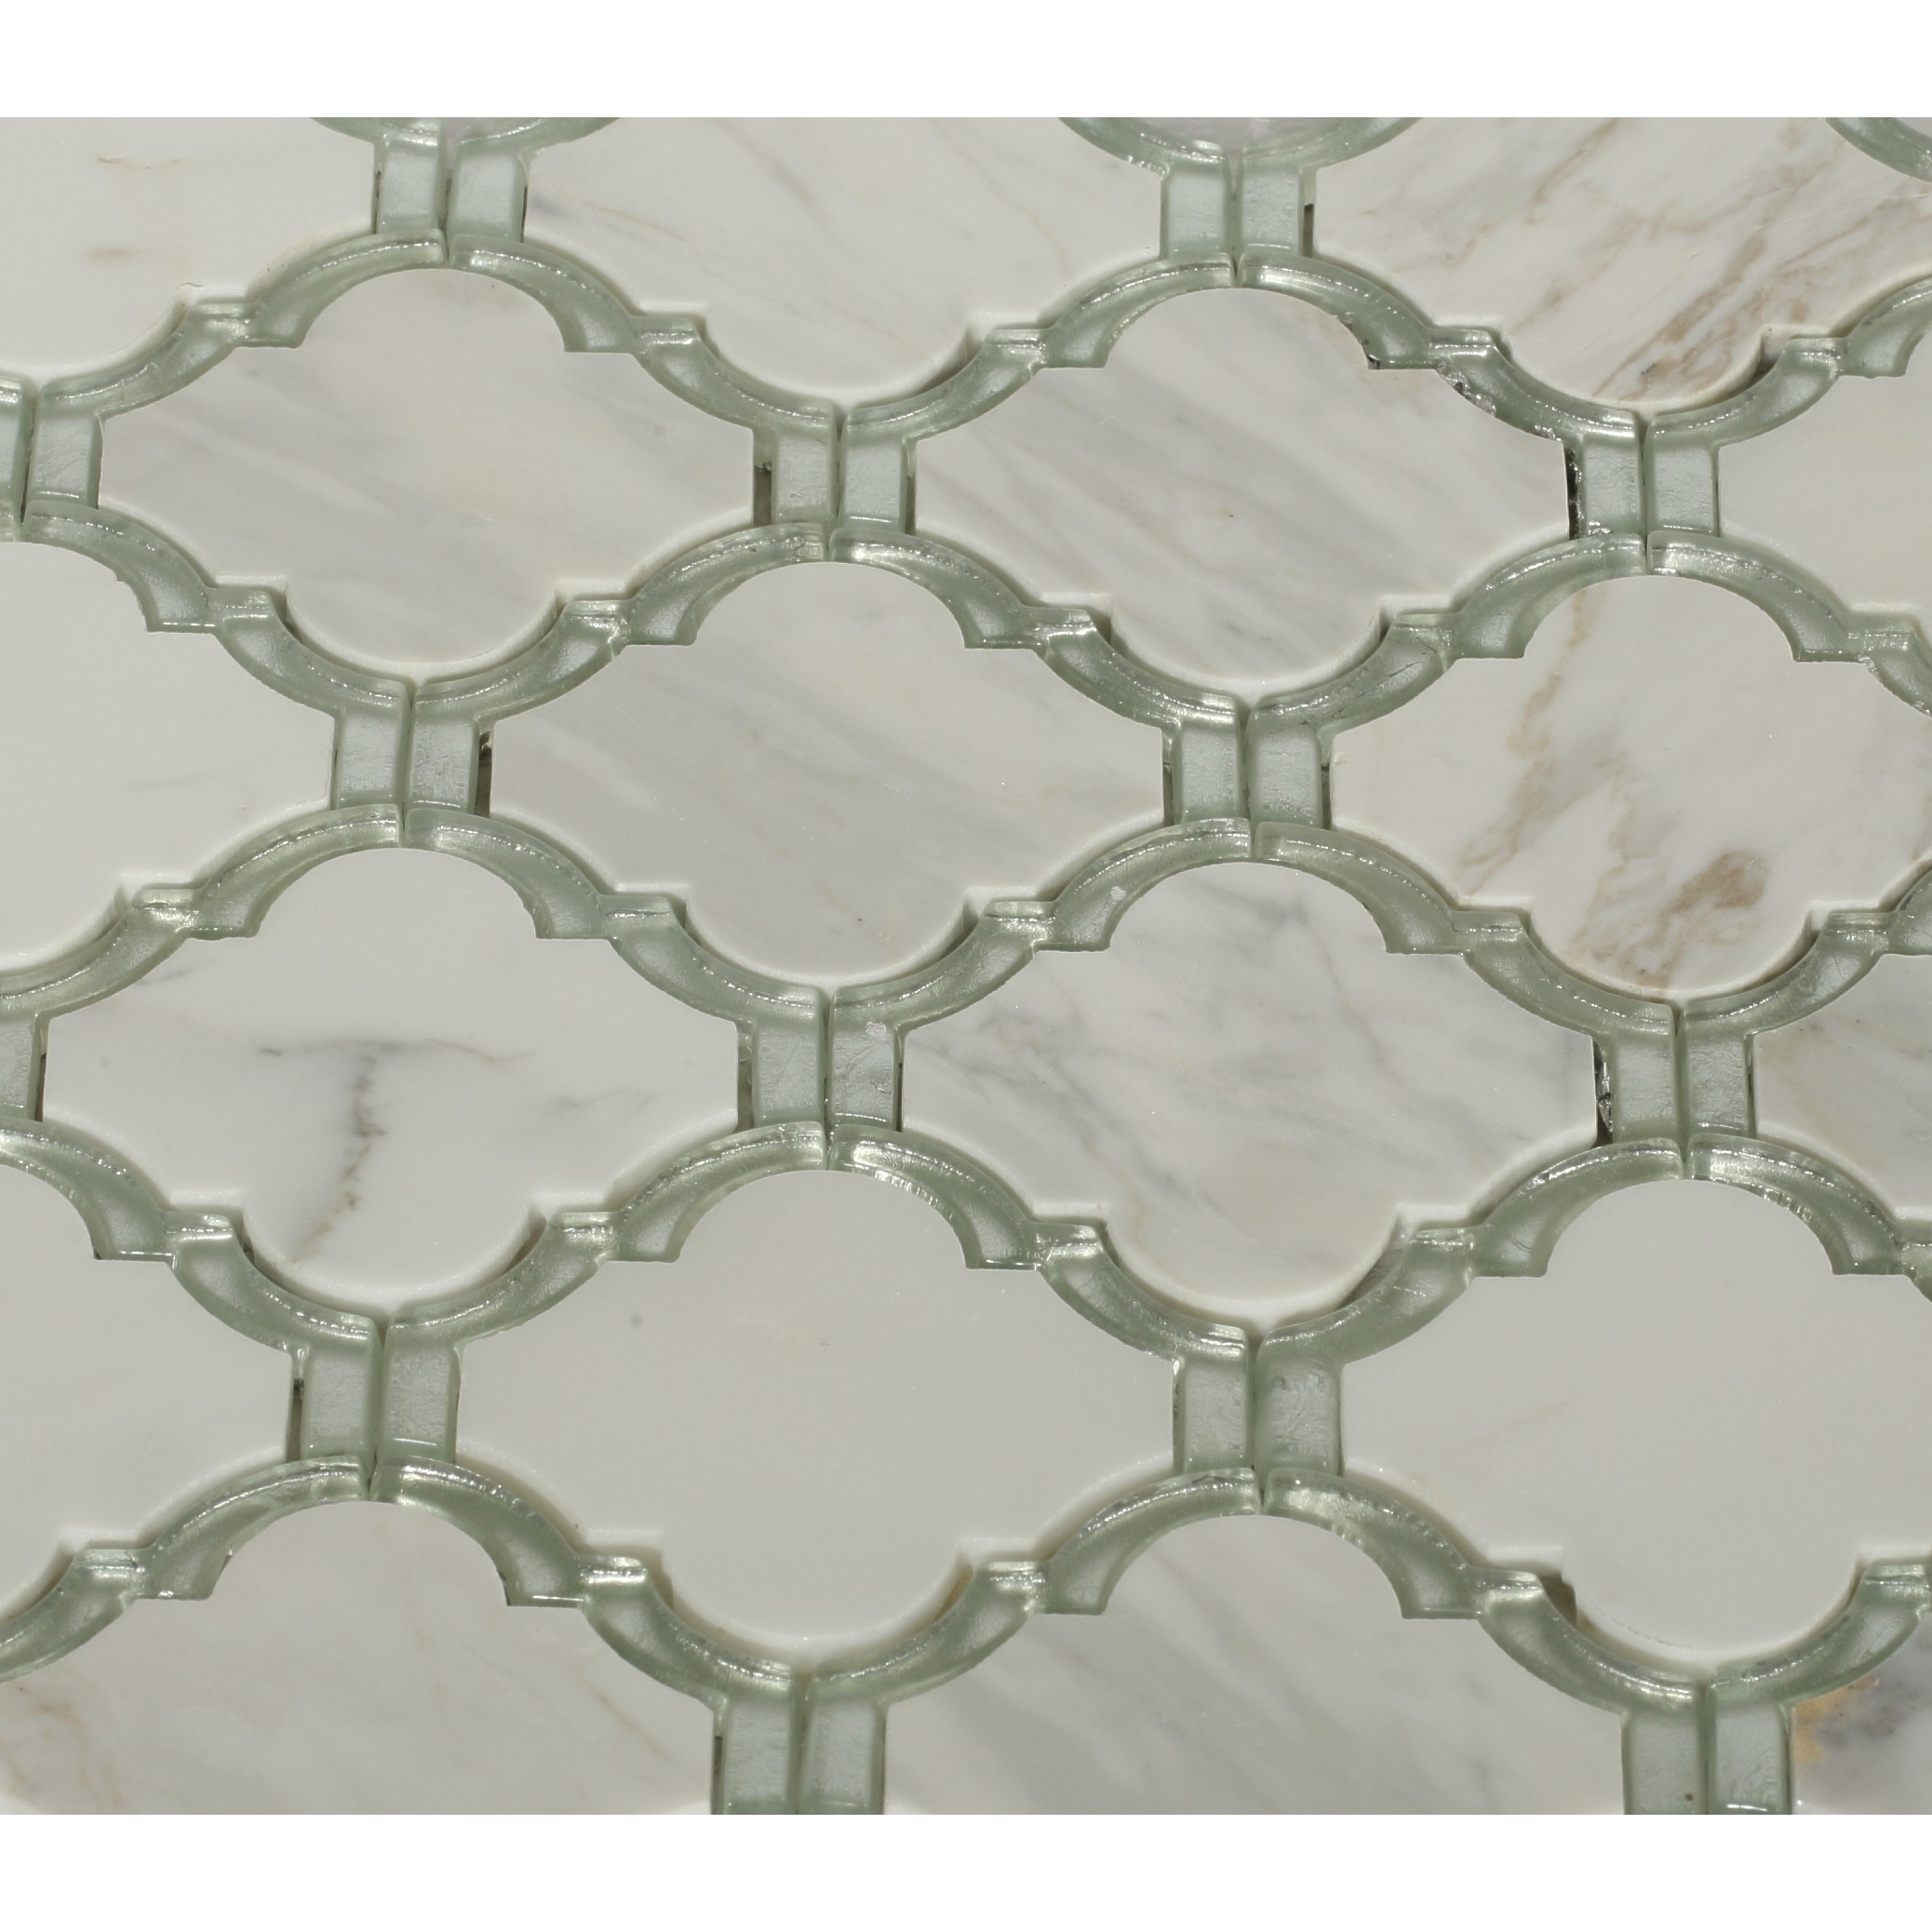 Shop For Highland Milan Marble Tile At Tilebar Com